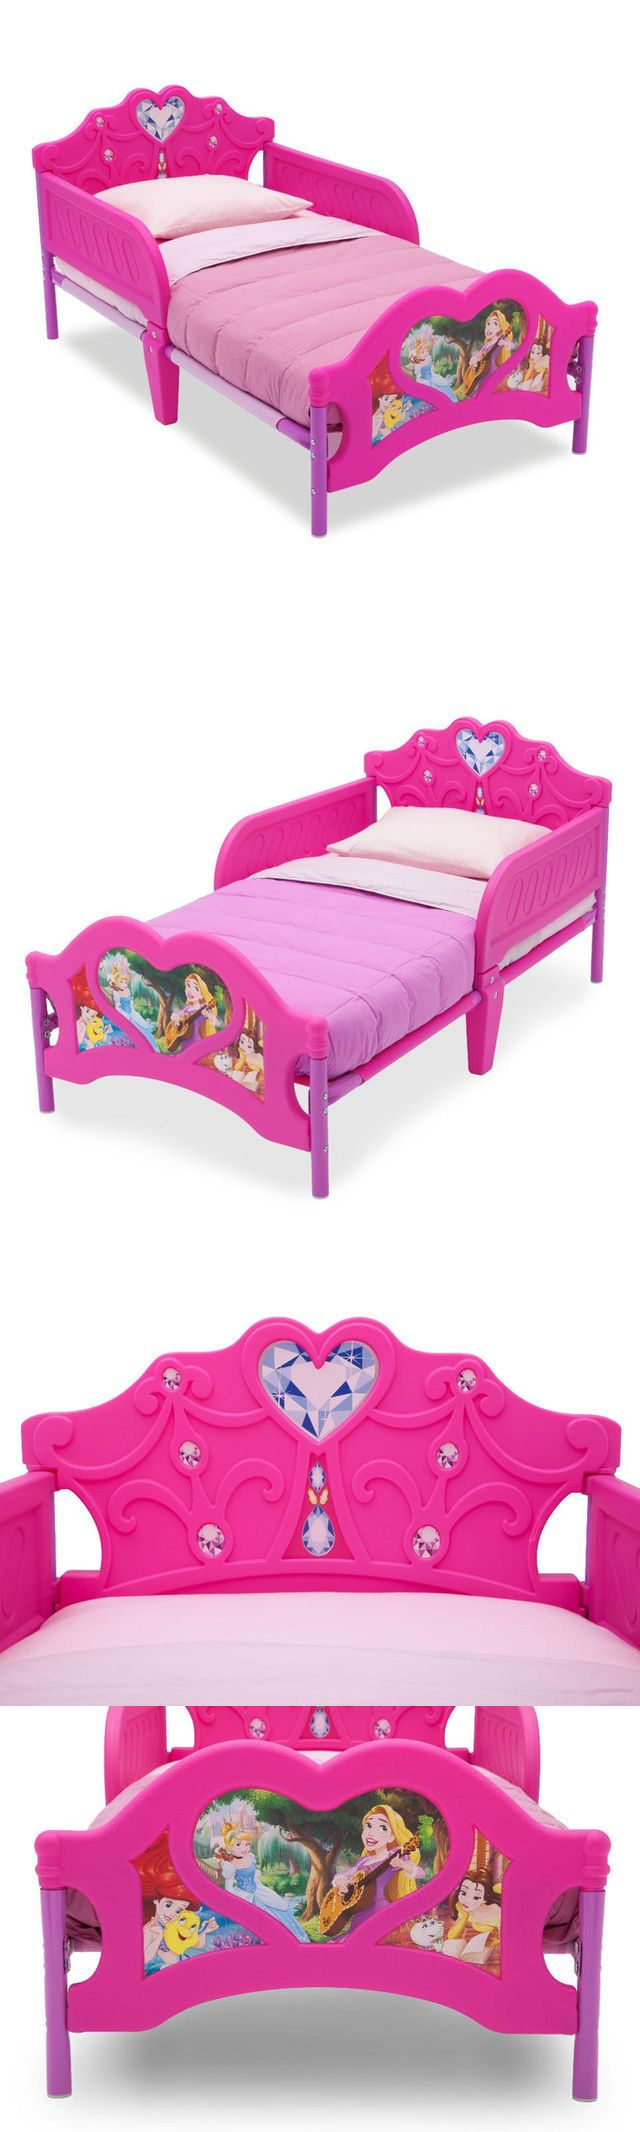 Other Nursery Bedding 20421: Disney Princess Toddler Bed Delta Furniture 3D Junior Cot Crib Size Girls -> BUY IT NOW ONLY: $109 on eBay!